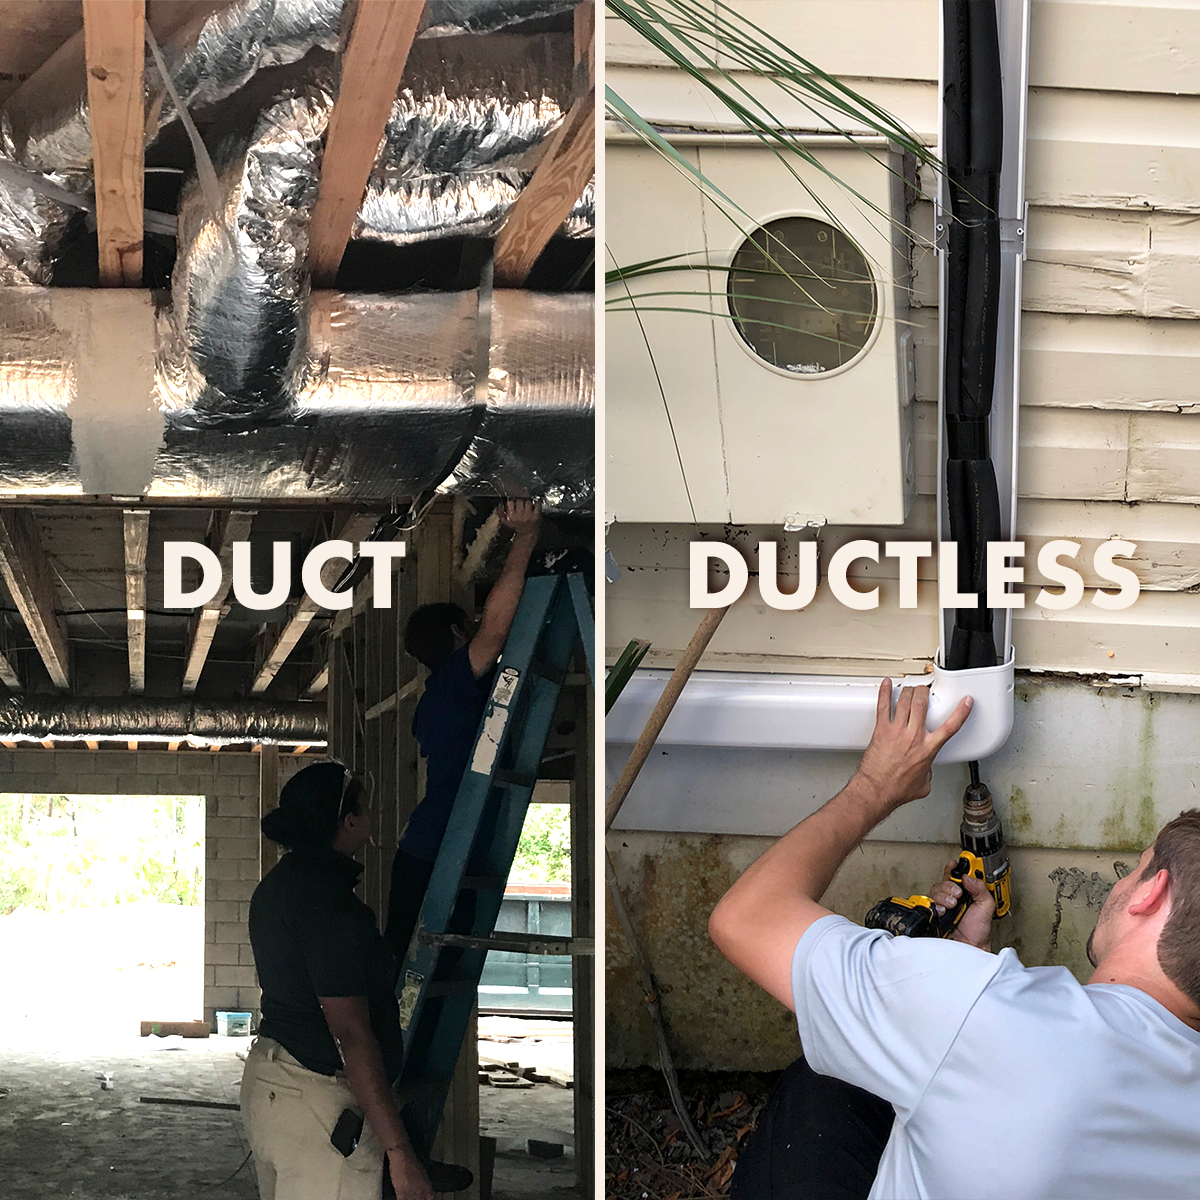 DUCT compared to DUCTLESS